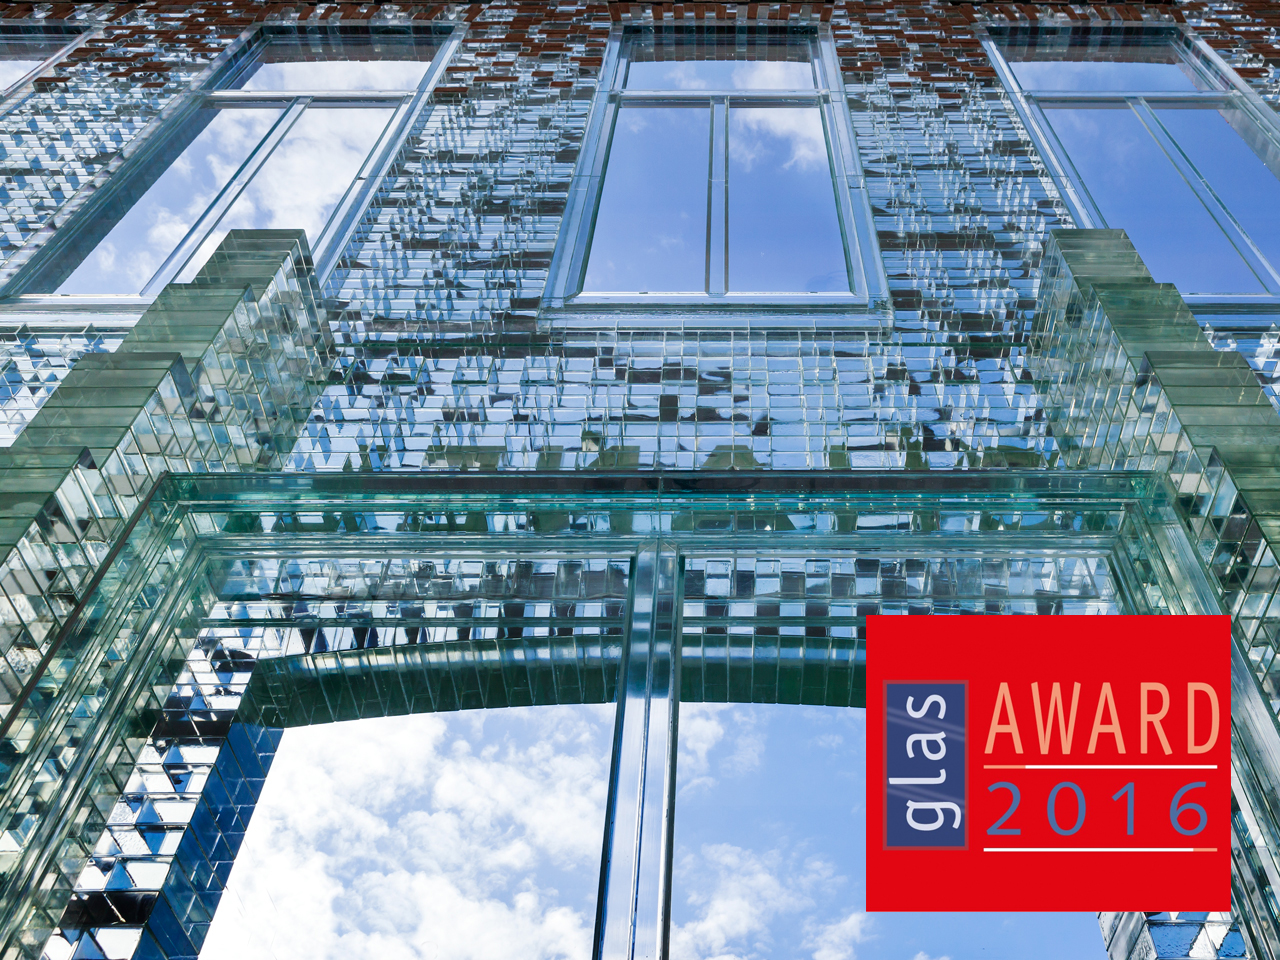 Crystal Houses' glass bricks win Glass Innovation Award 2016